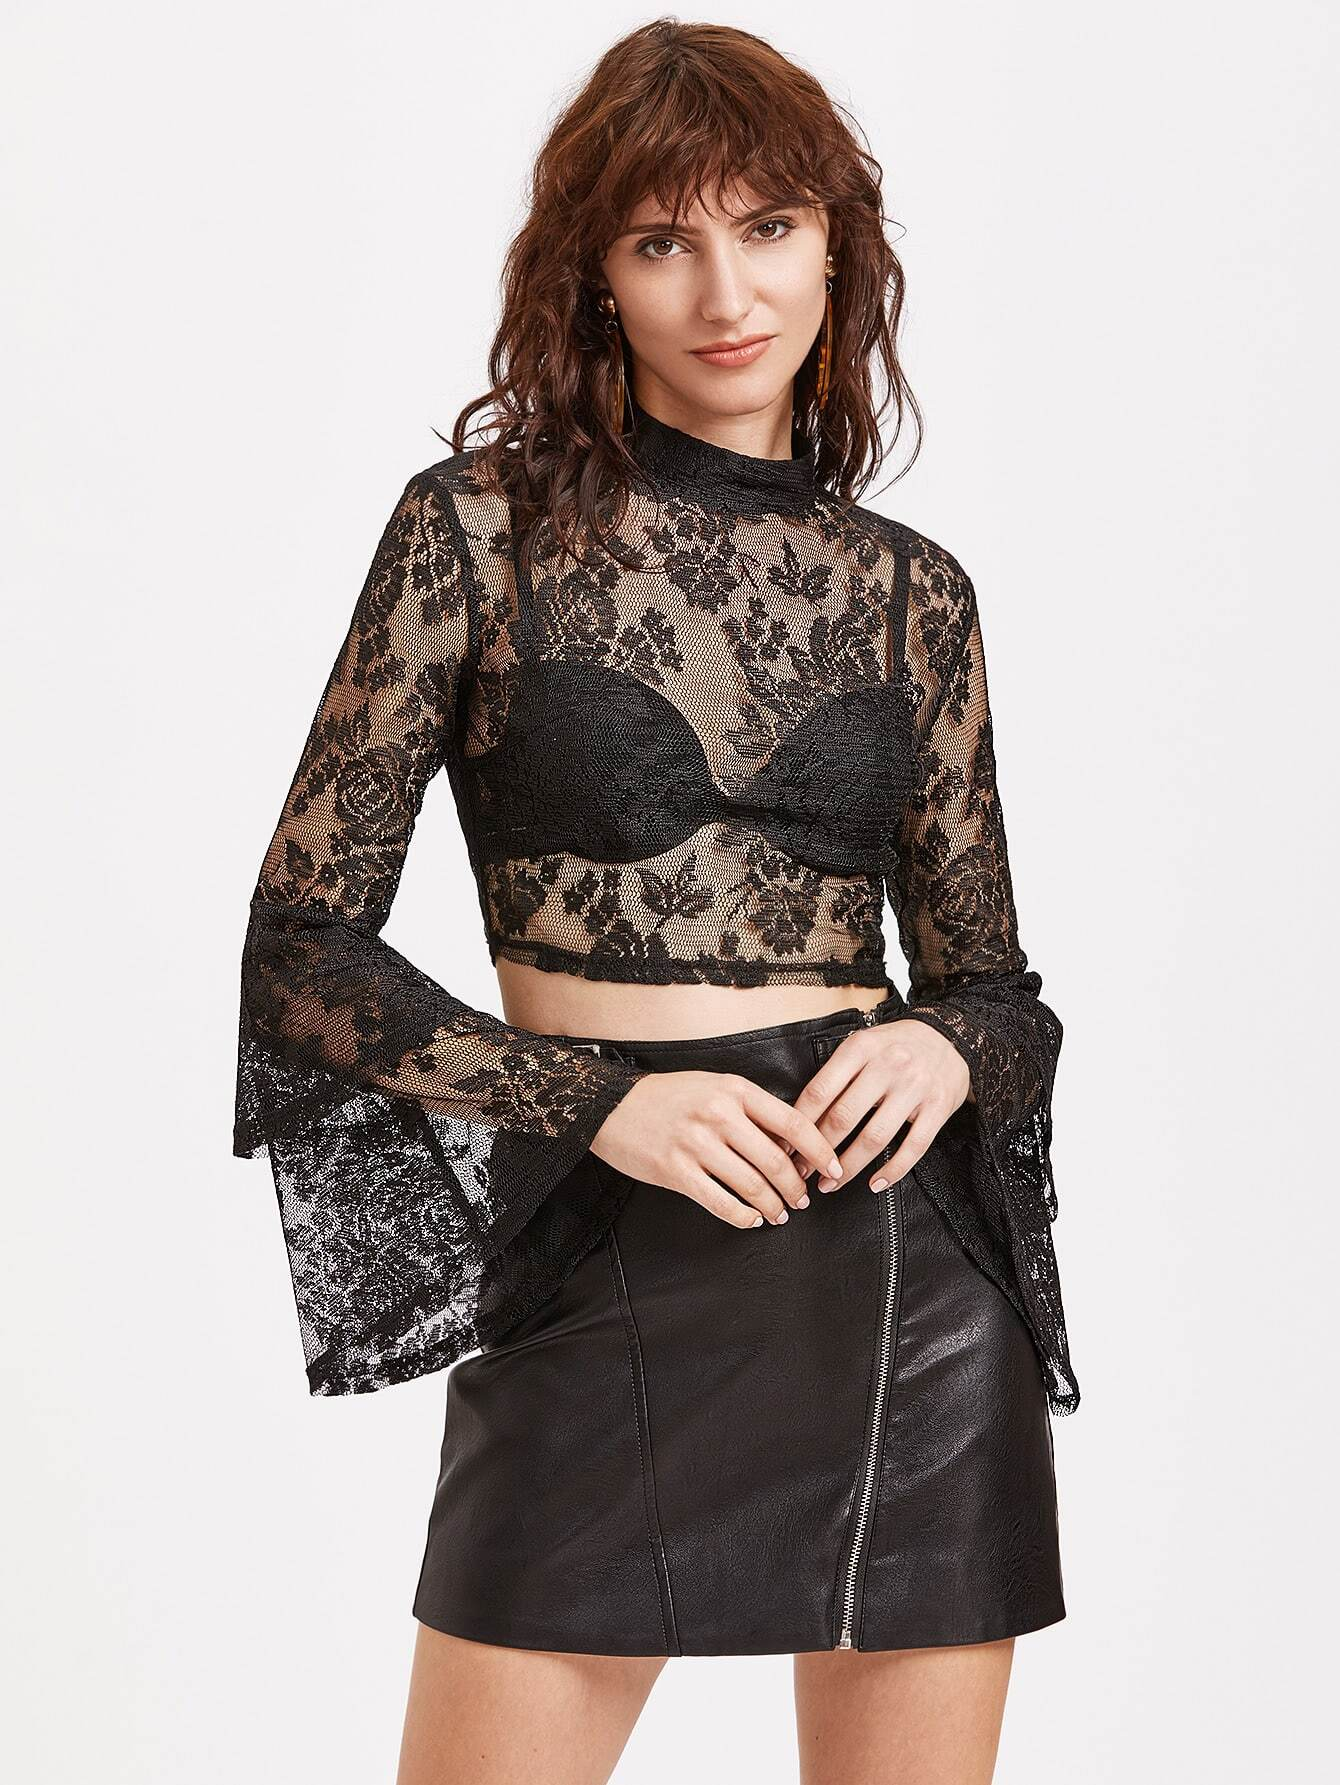 Black Bell Sleeve Sheer Floral Lace Top blouse170224703